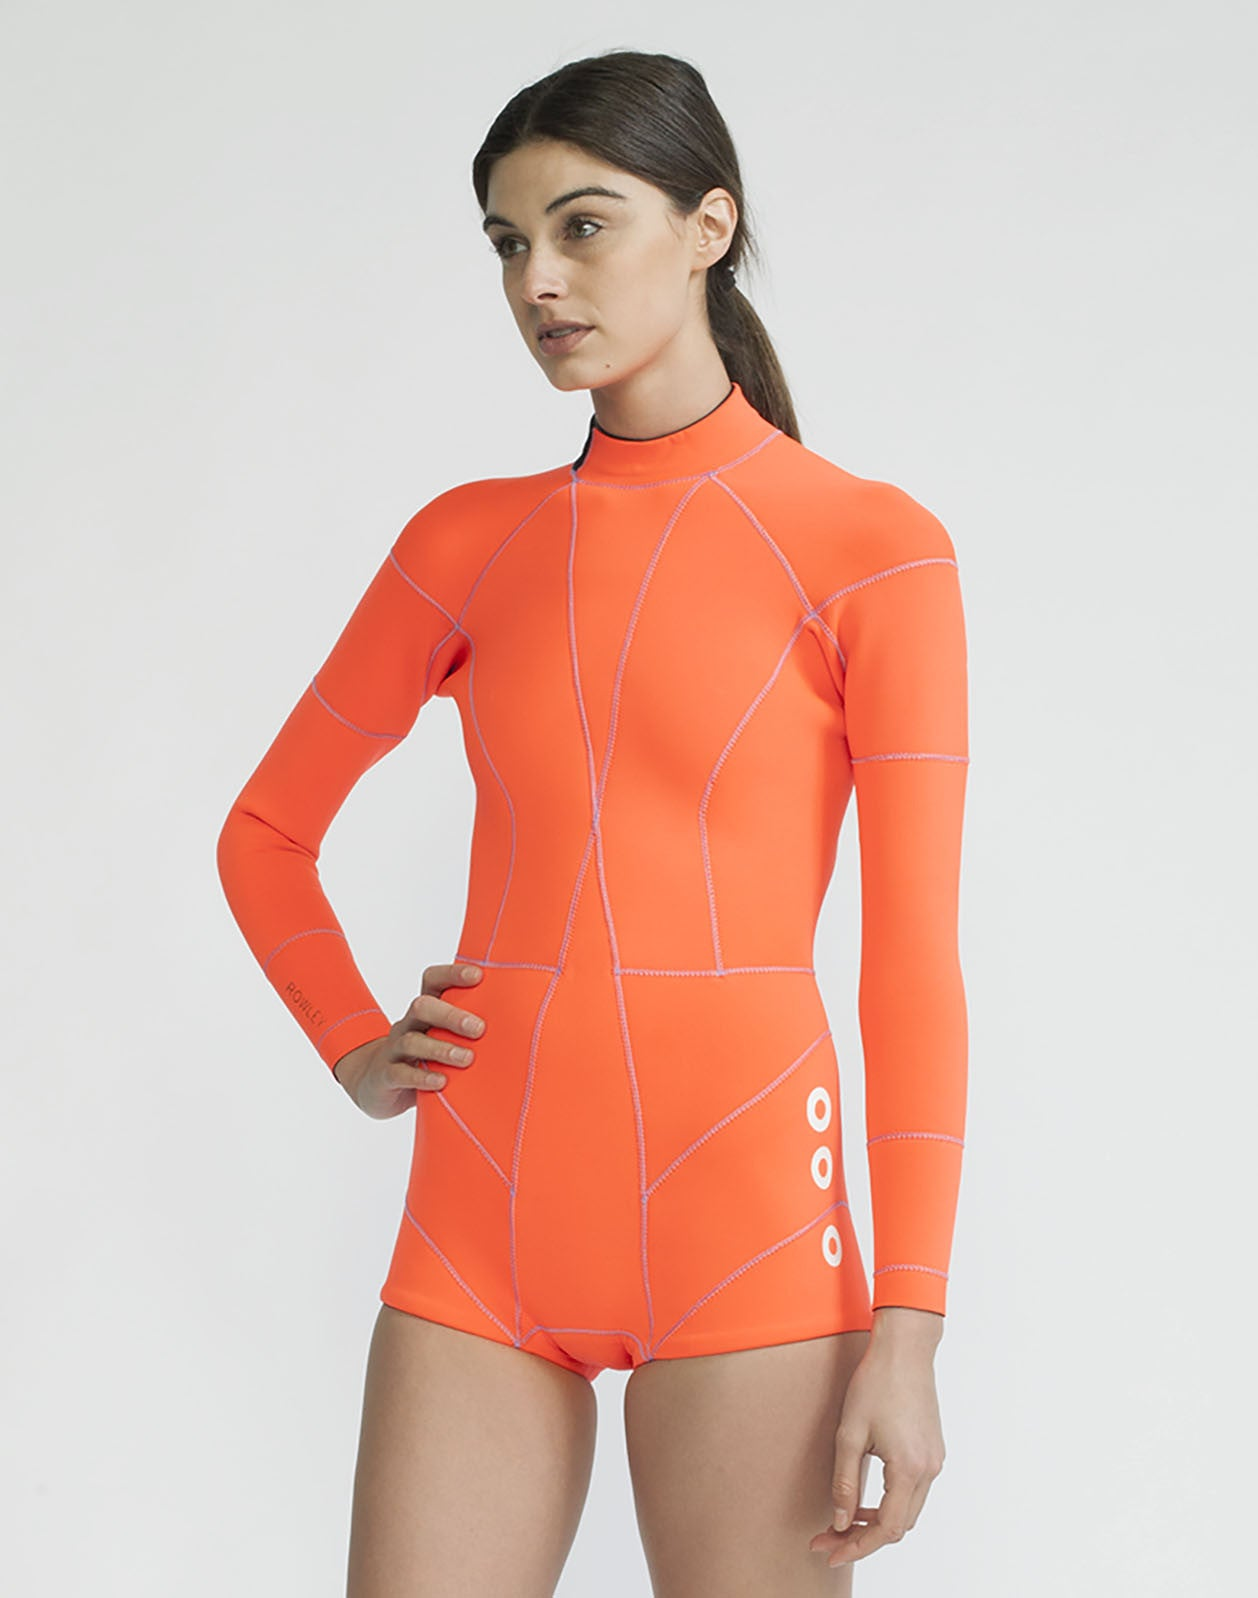 Front view of the Faux Grommet Neon Orange Wetsuit 2MM Fiber-Lite bright orange Neoprene with faux grommets and side zips at hips